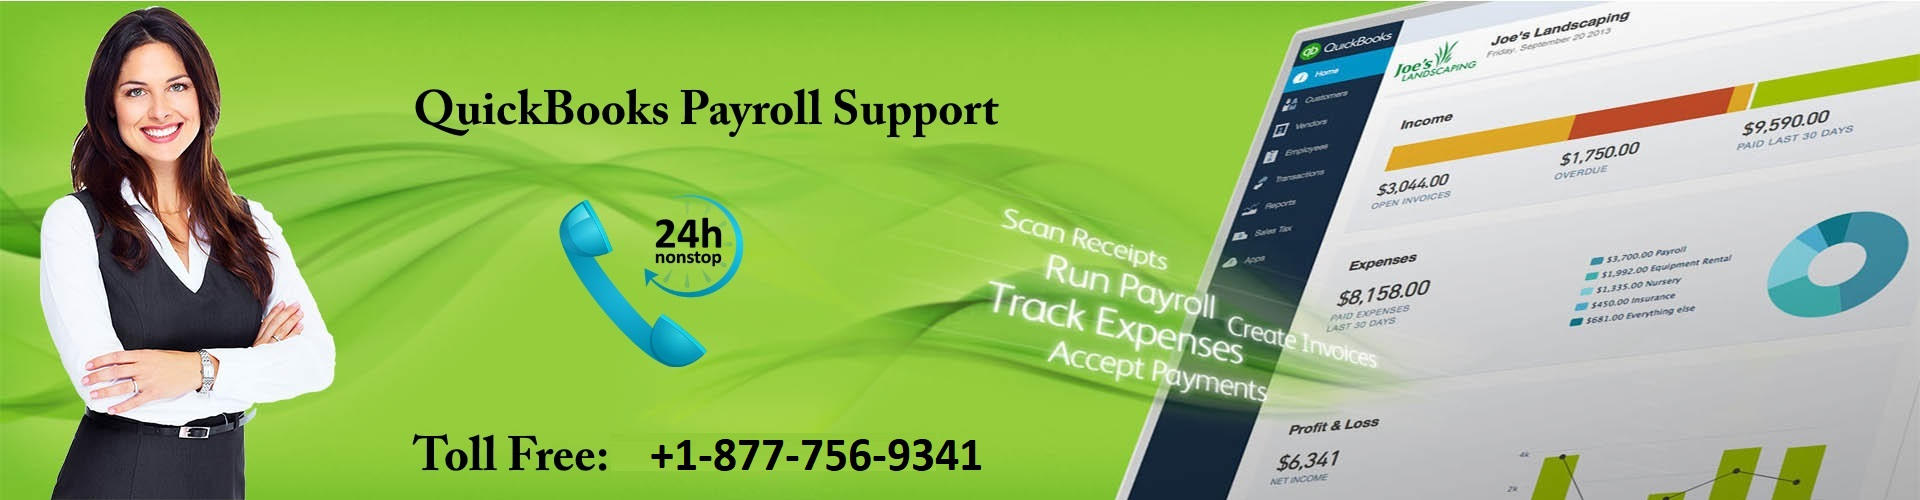 quickbooks support number 877-756-9341